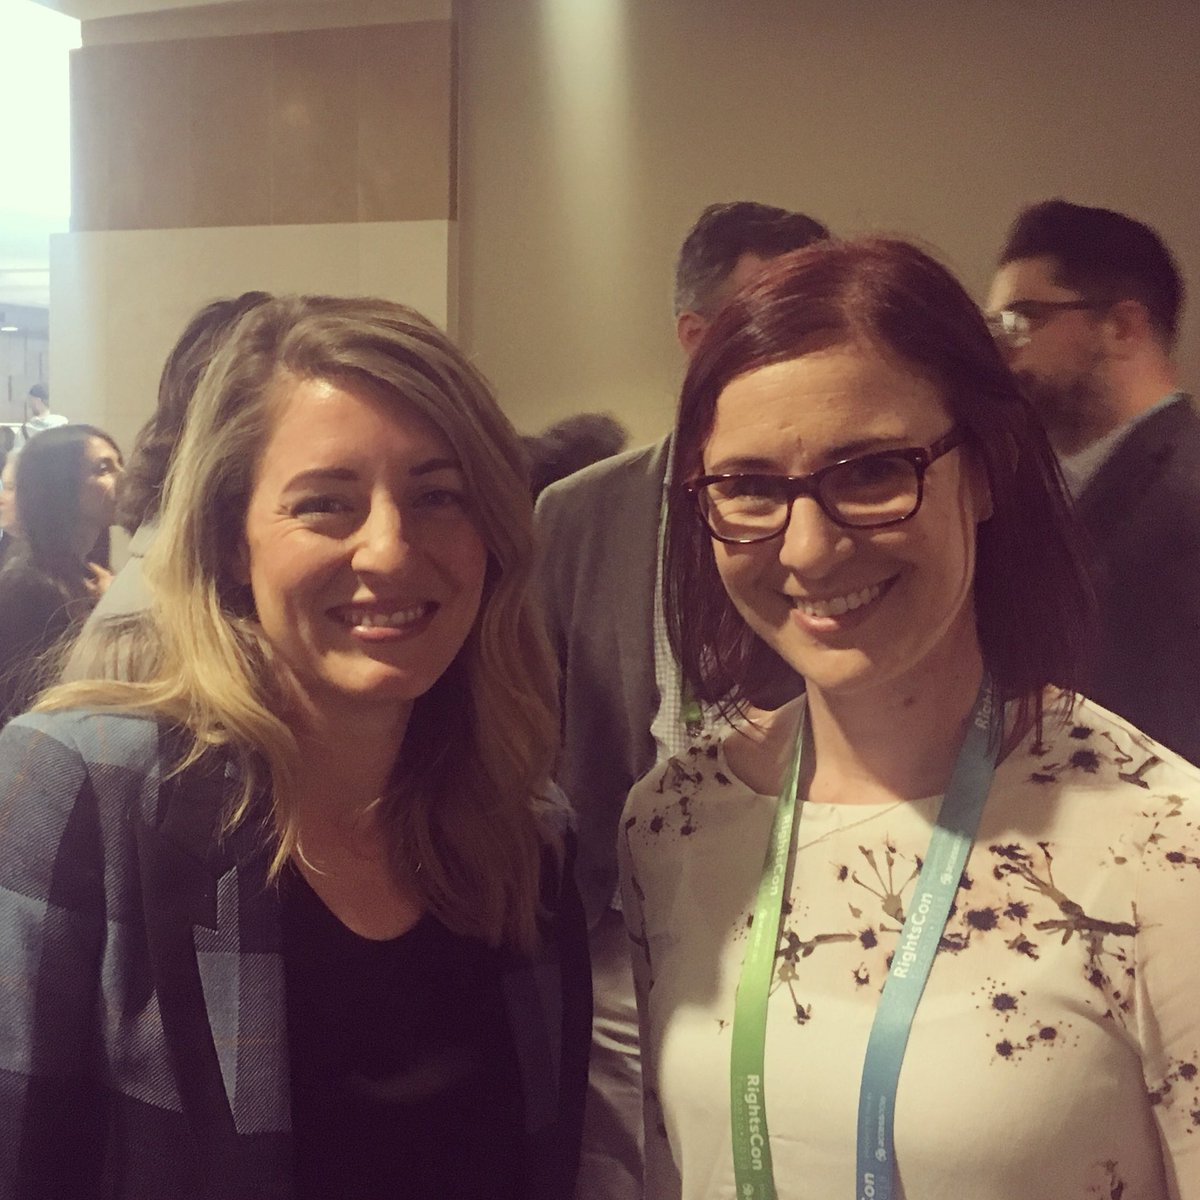 Had the chance to meet Minister  @melaniejoly today at #RightsCon. Looking forward to more fulsome conversations about net neutrality, website blocking, and the future of Canada's broadcast, telecom, and copyright acts. <br>http://pic.twitter.com/cBflZgfnkv